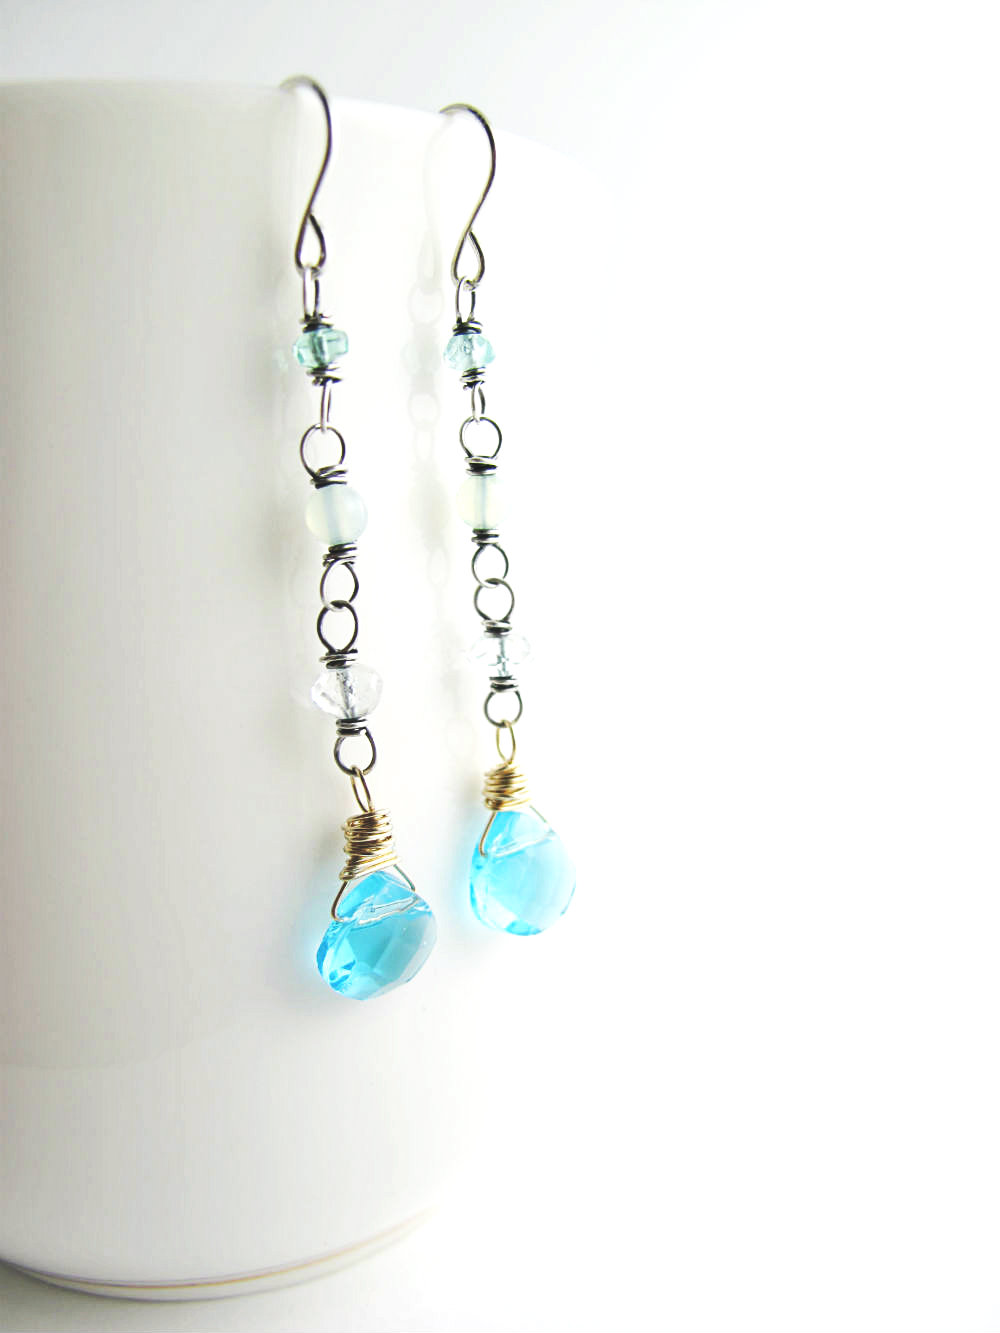 Siren's Song Earrings by Beth Hemmila of Hint Jewelry